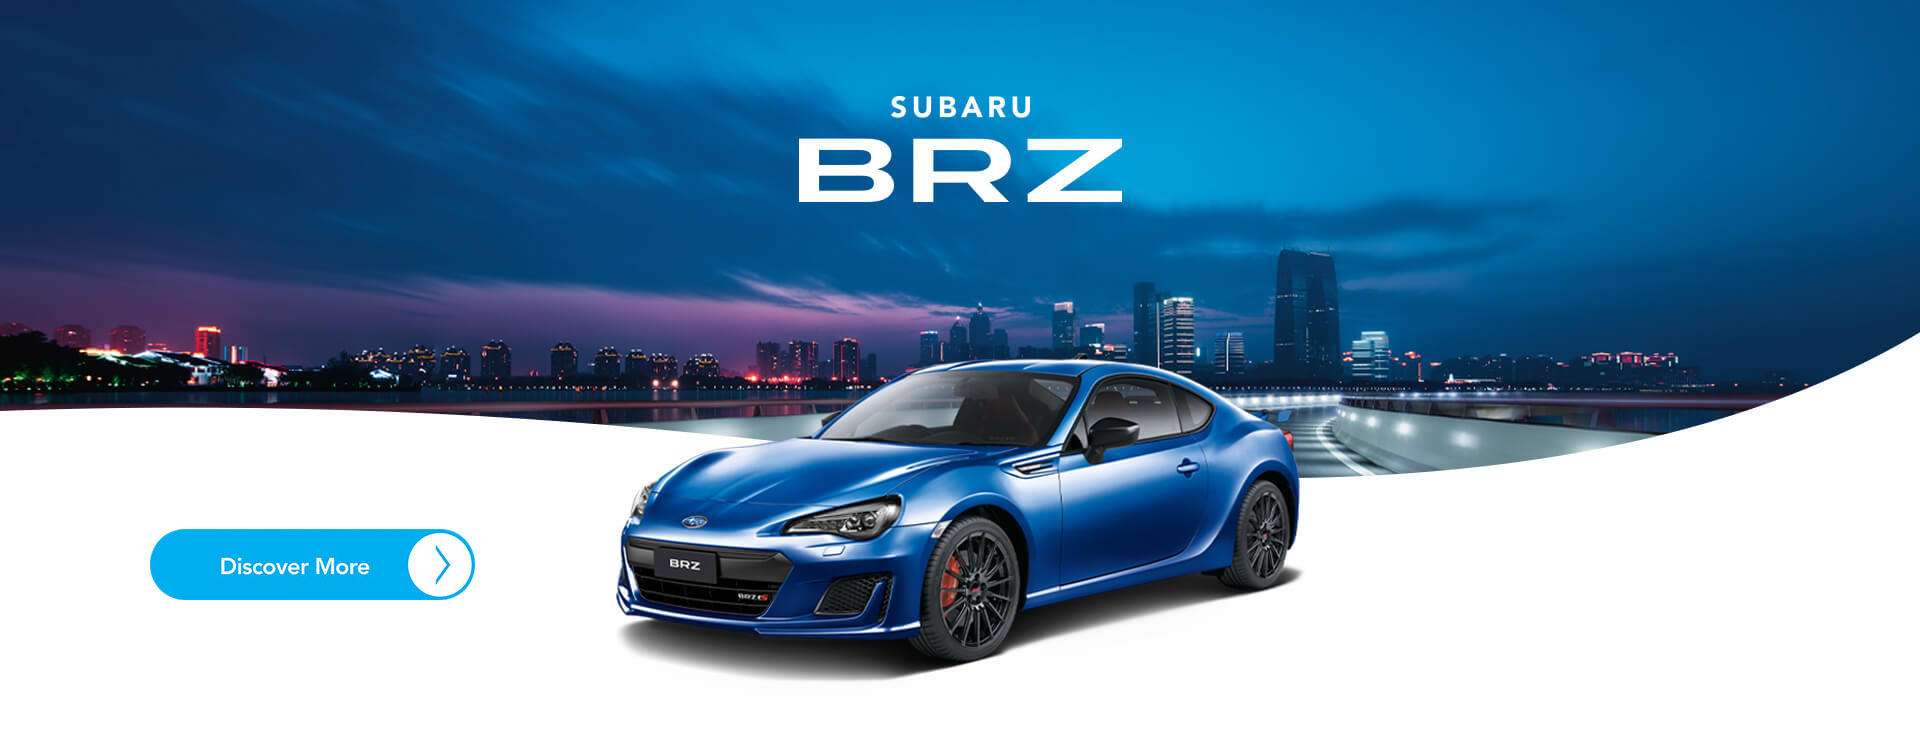 New MY20 Subaru BRZ now available at Trinity Subaru, Cairns. Test Drive Today!